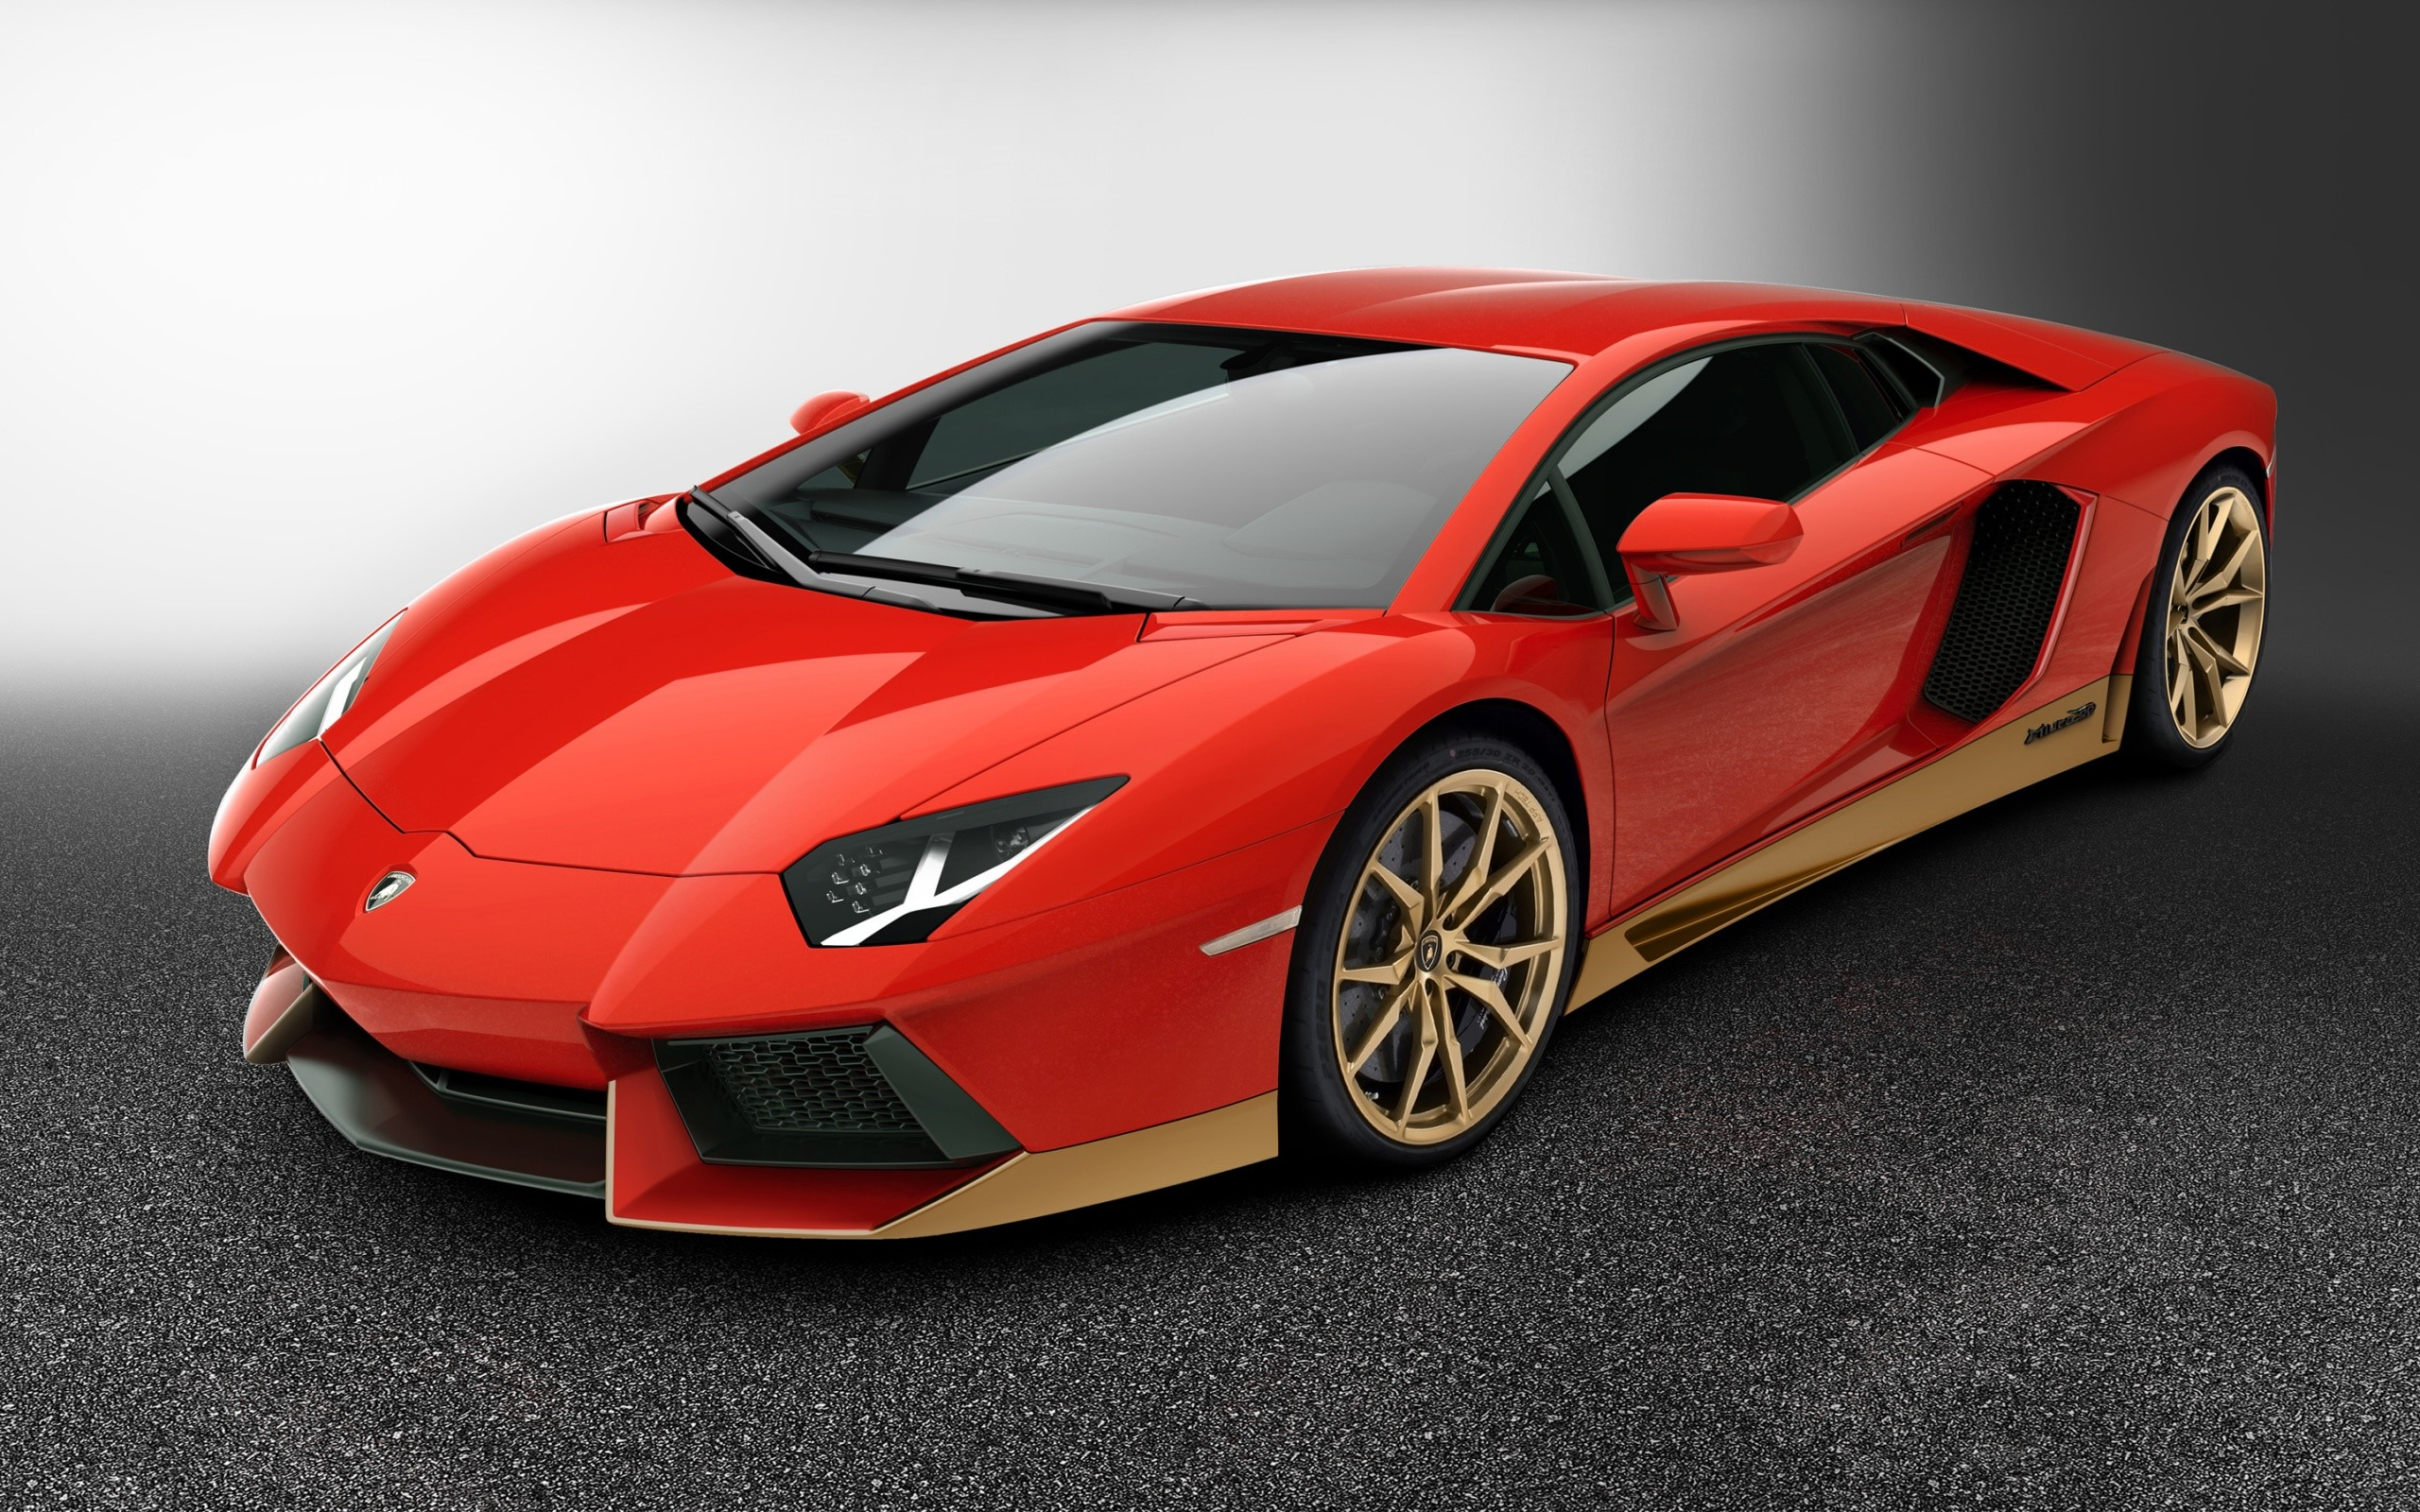 Wallpaper Lamborghini Aventador LP 700 4 rojo Images